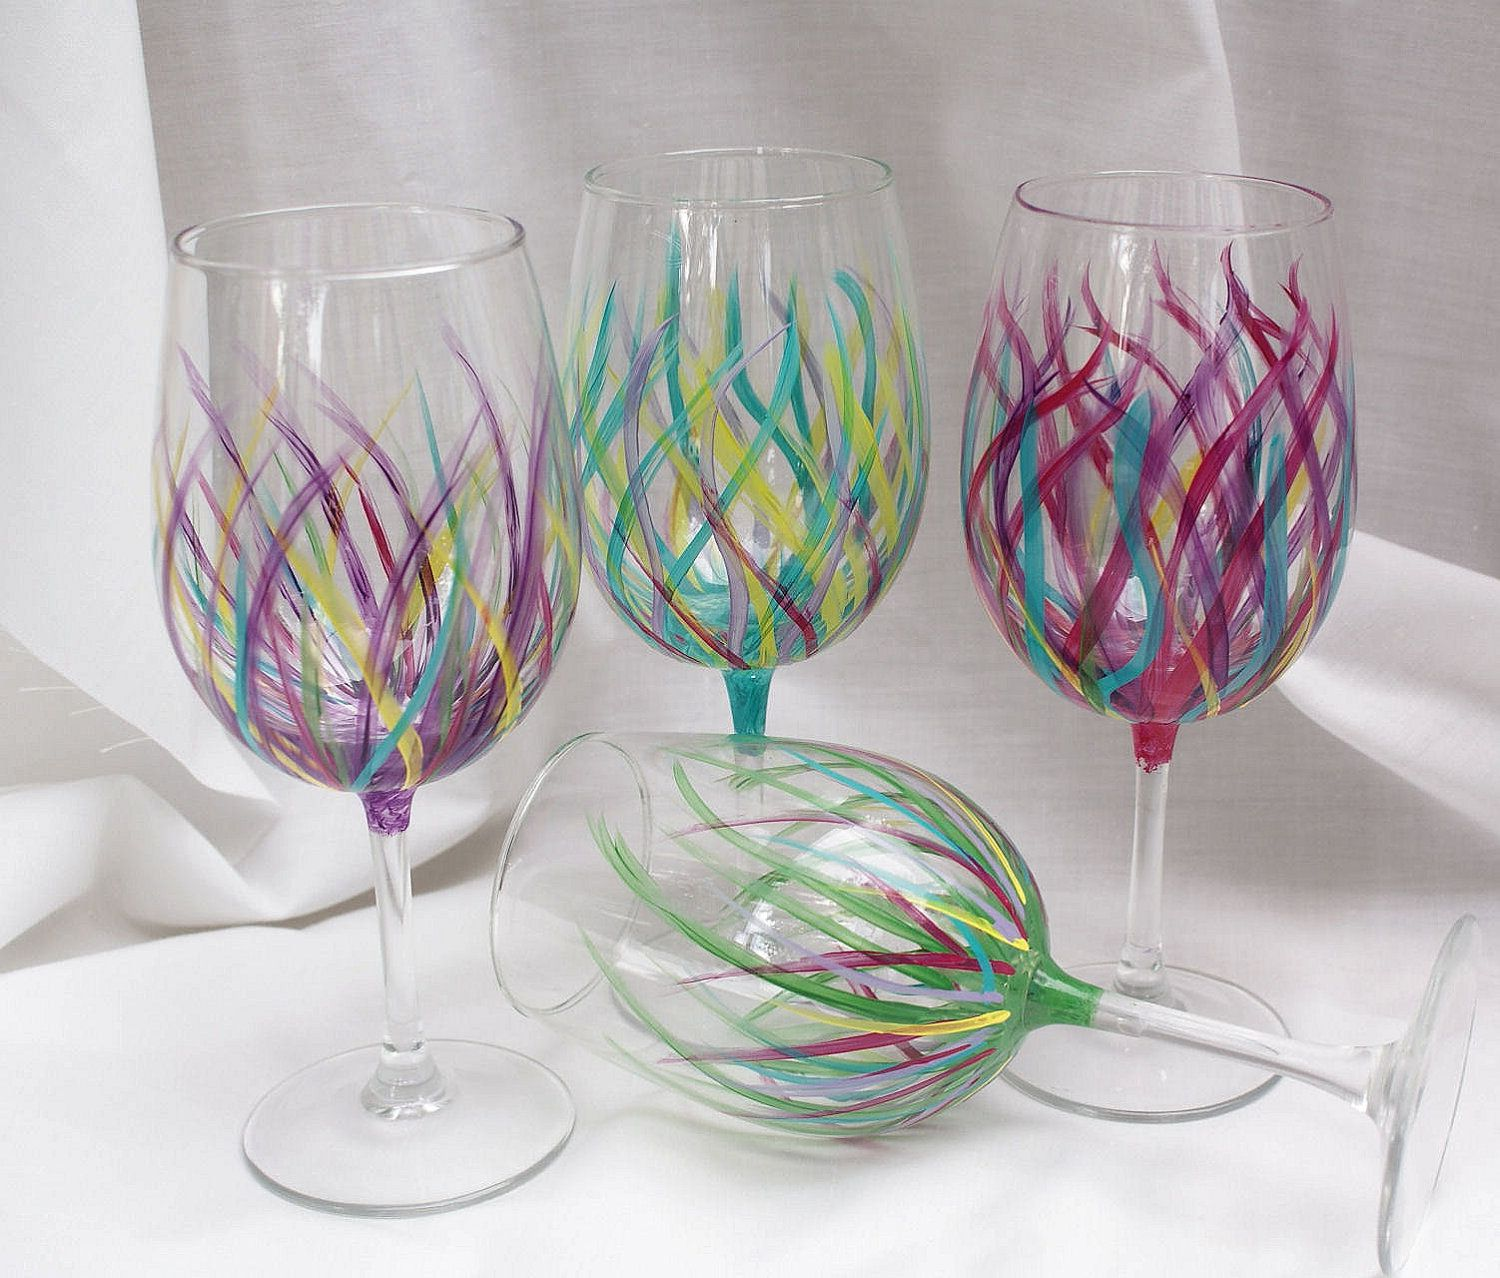 How To Paint Wine Glasses At Home